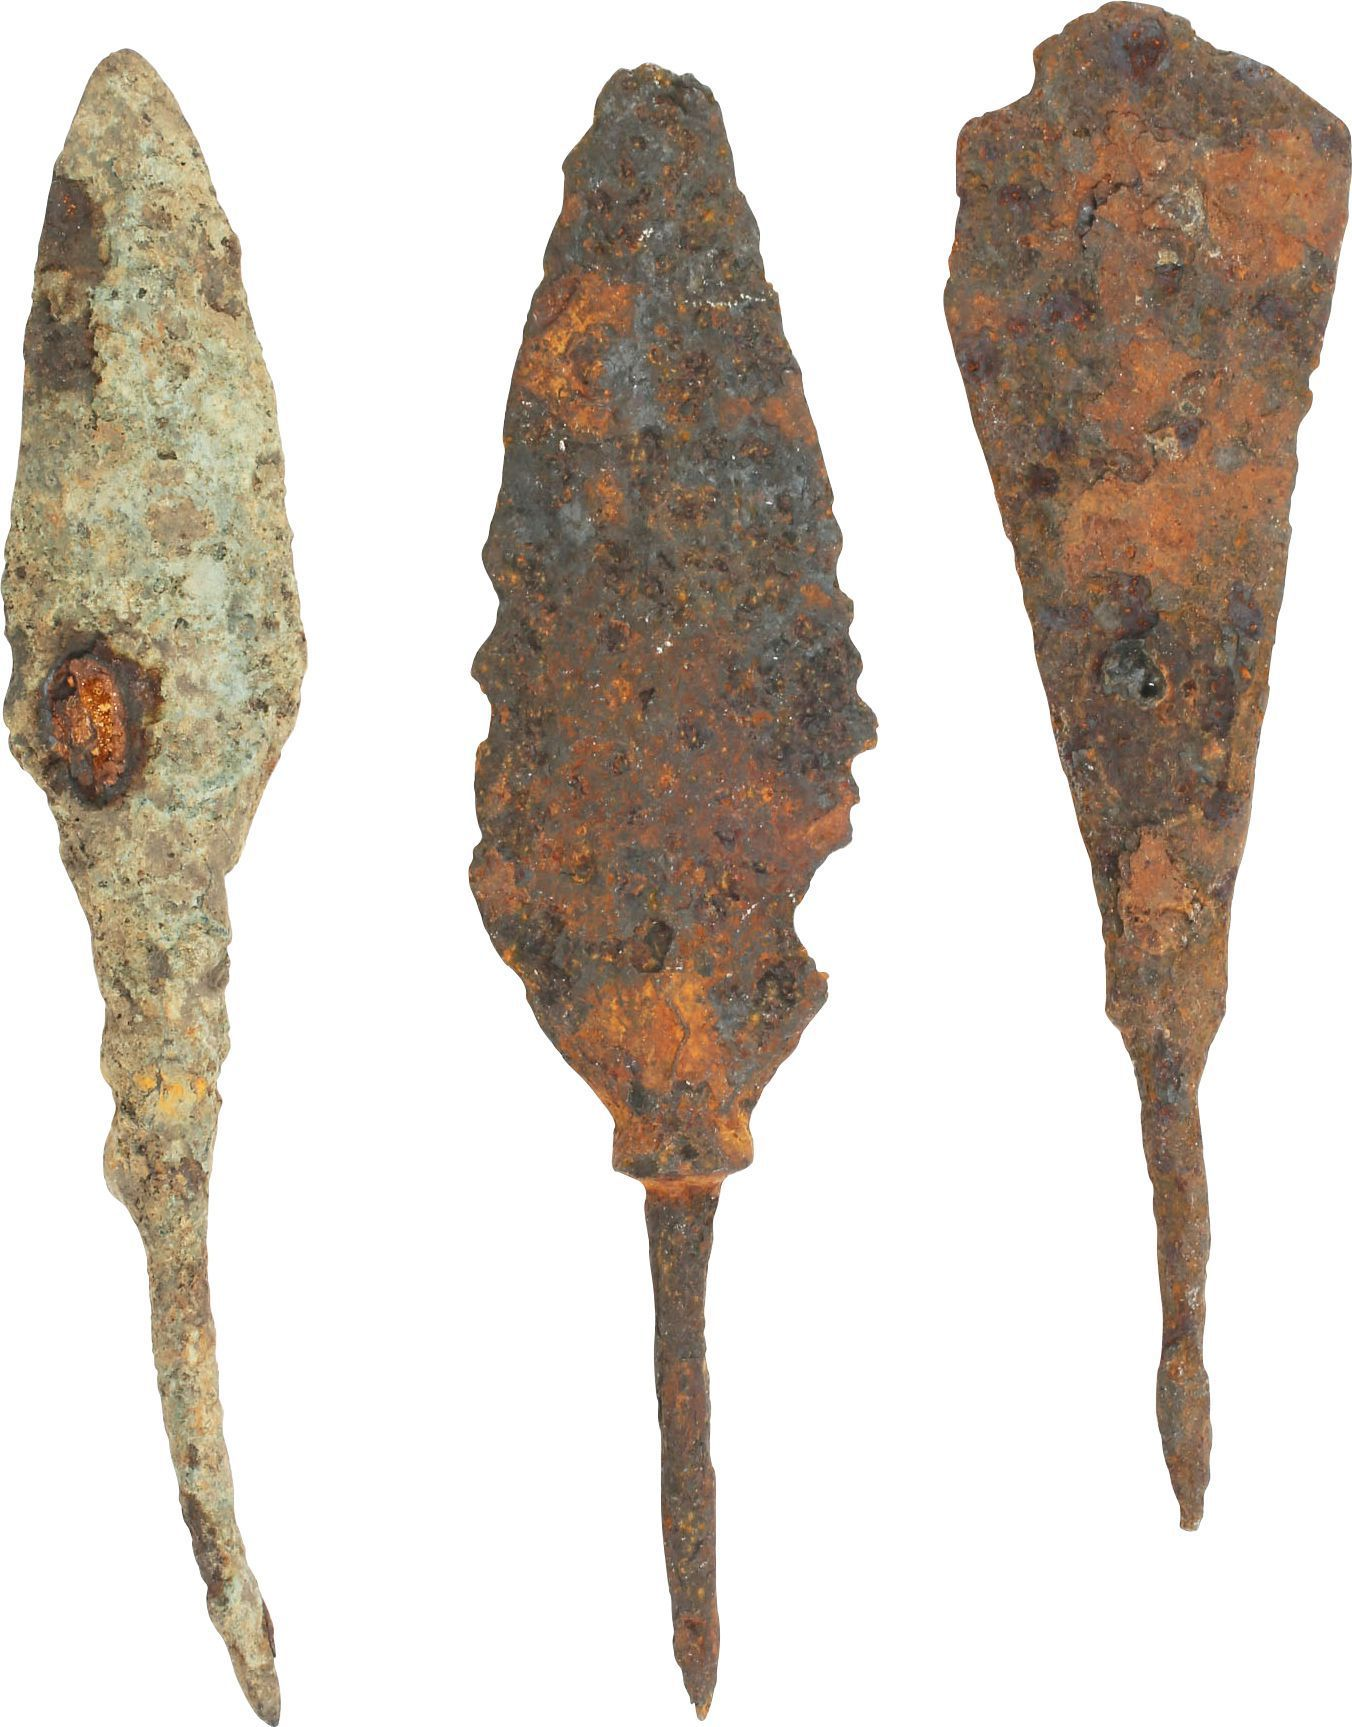 Three  Iron Arrowheads - Product